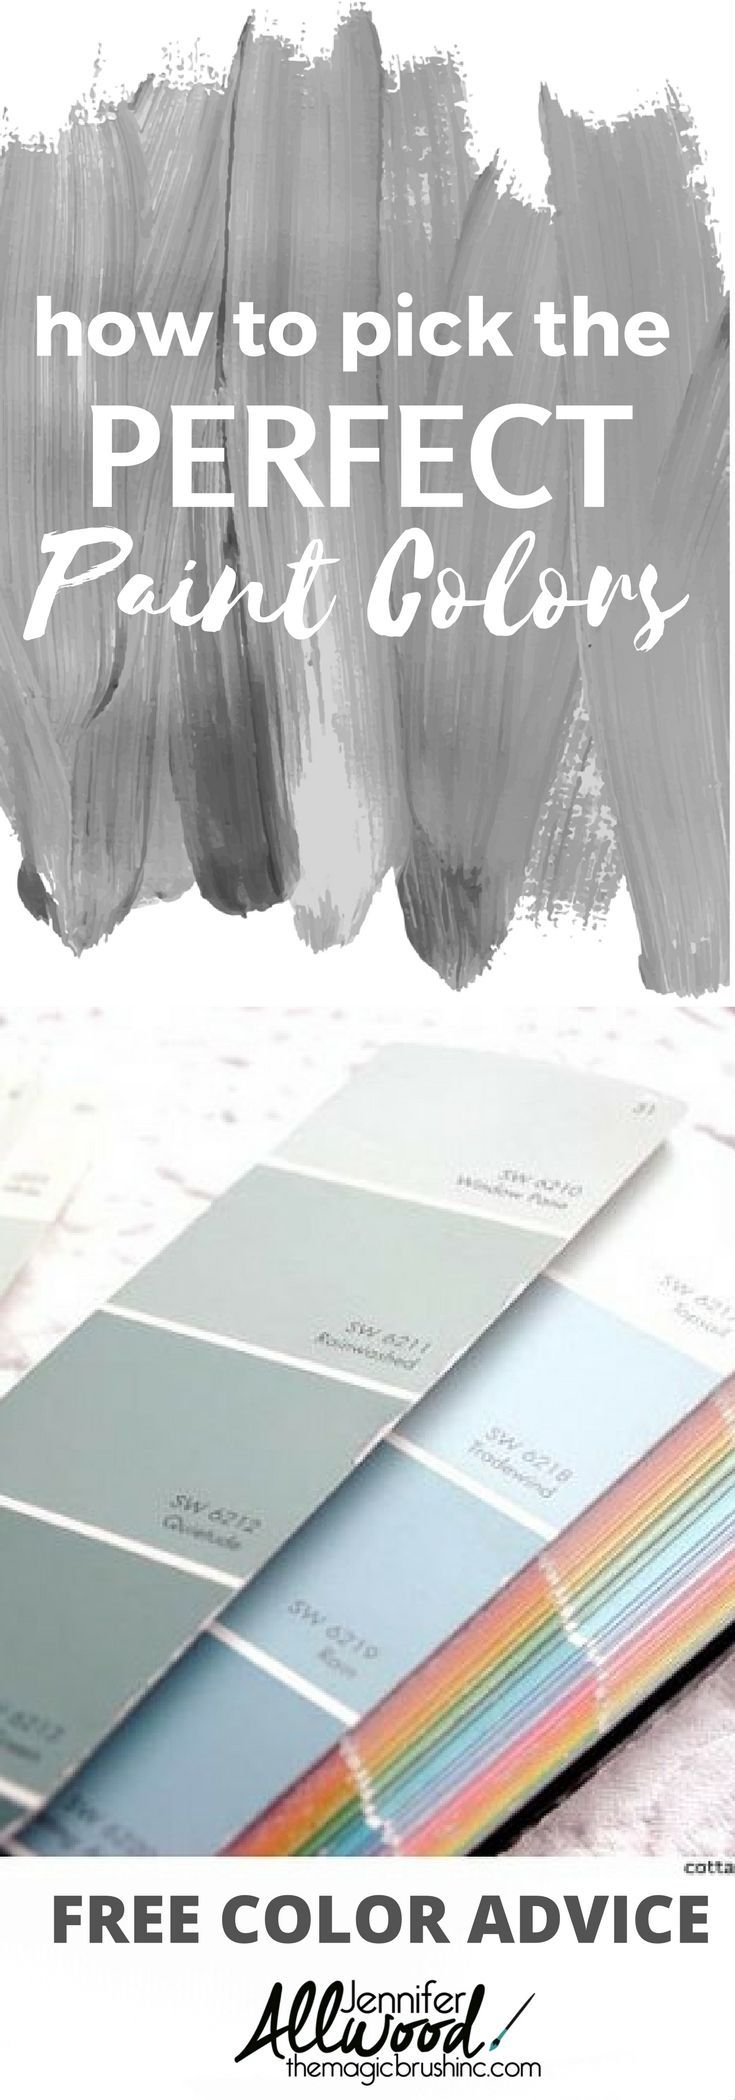 How to pick the perfect paint colors for your walls. Free color advice from professional painter Jennifer Allwood of theMagicBrushinc.com. How to pick the perfect wall color every time!